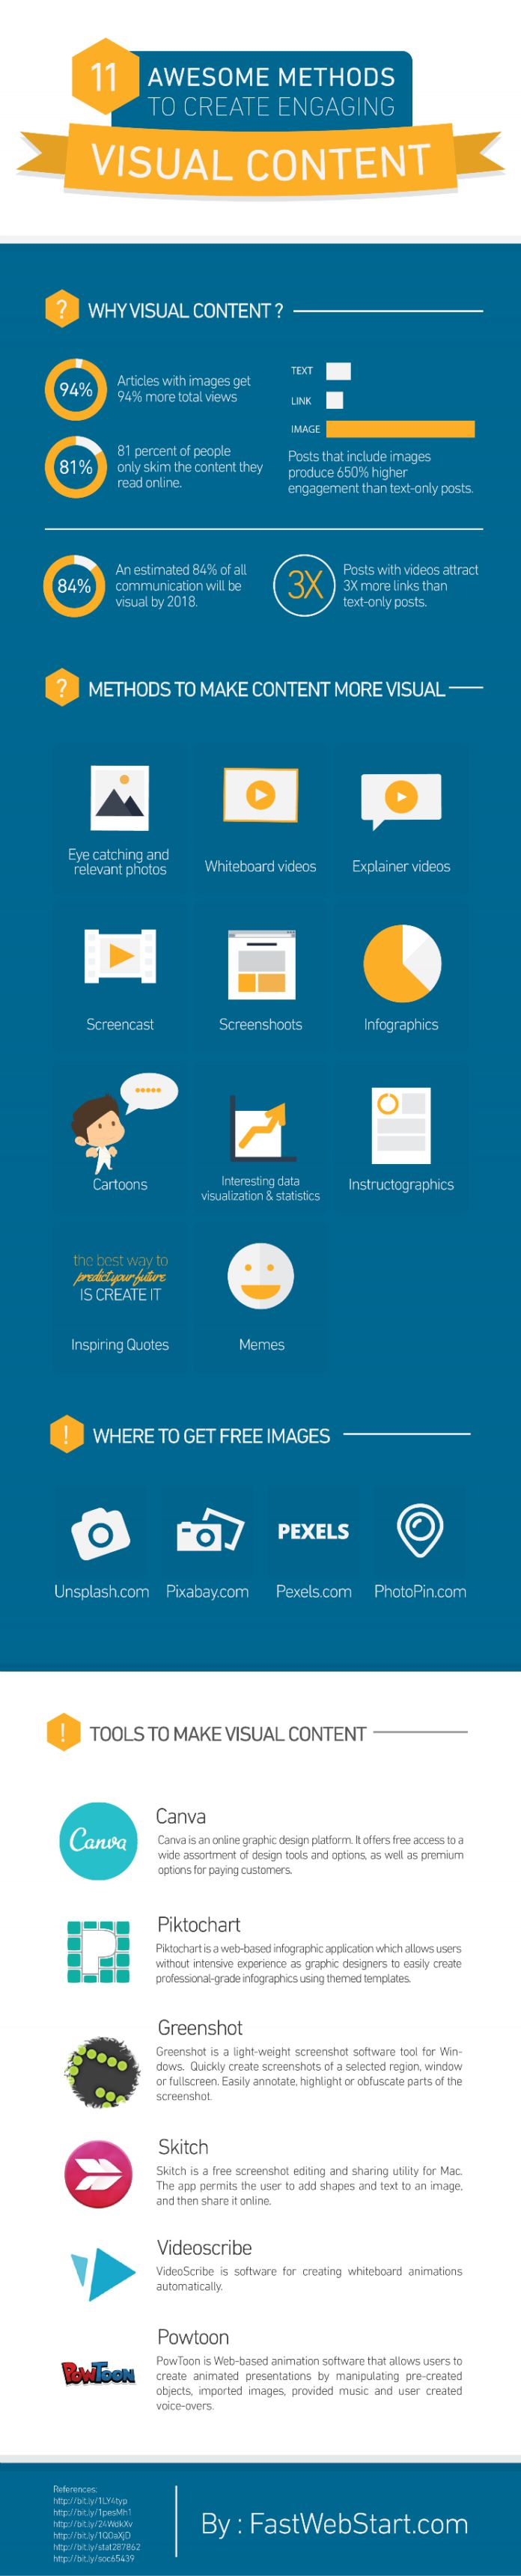 18 best eCommerce images on Pinterest | Business, Coaching and E ...